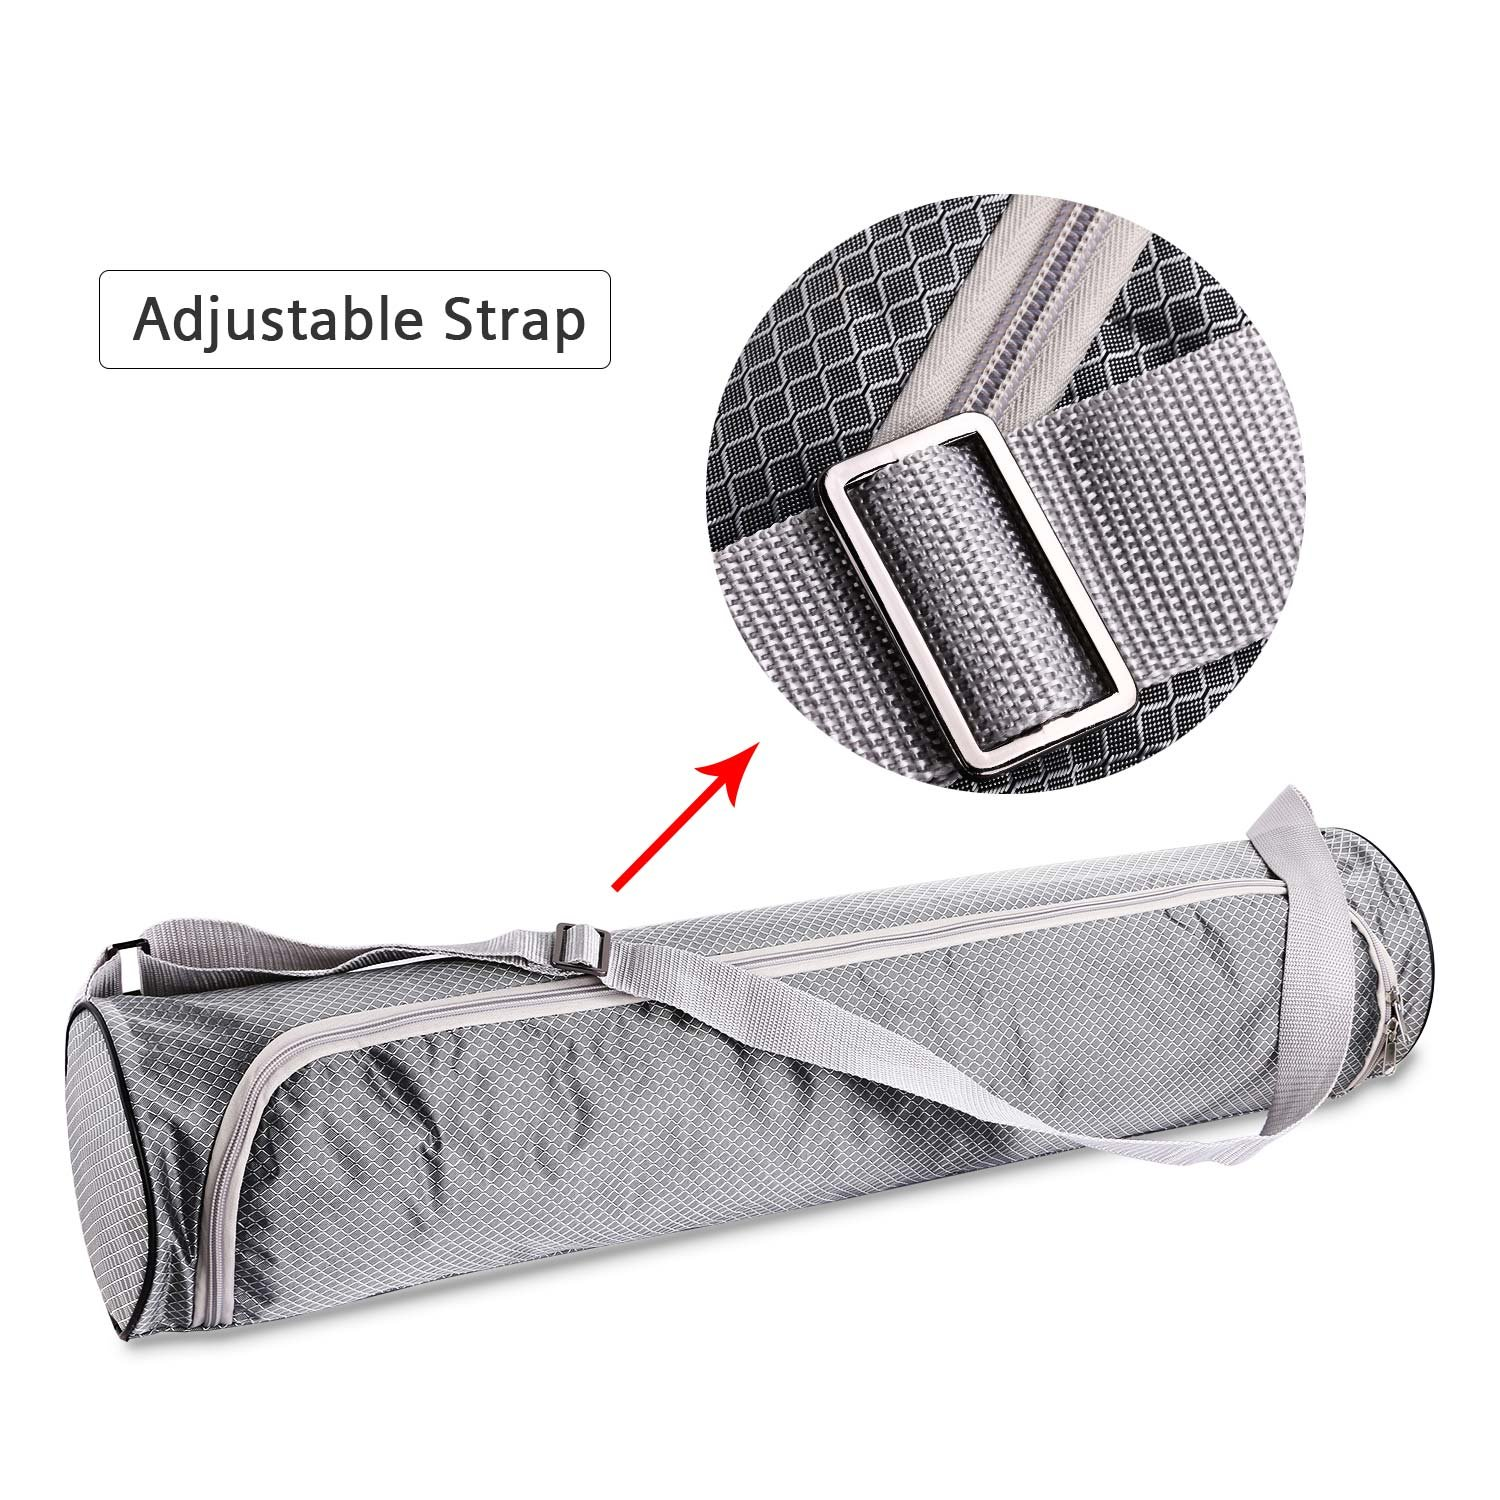 OXA Large Water Proof Yoga Mat Carry Bag with Adjustable Shoulder Strap by OXA (Image #2)